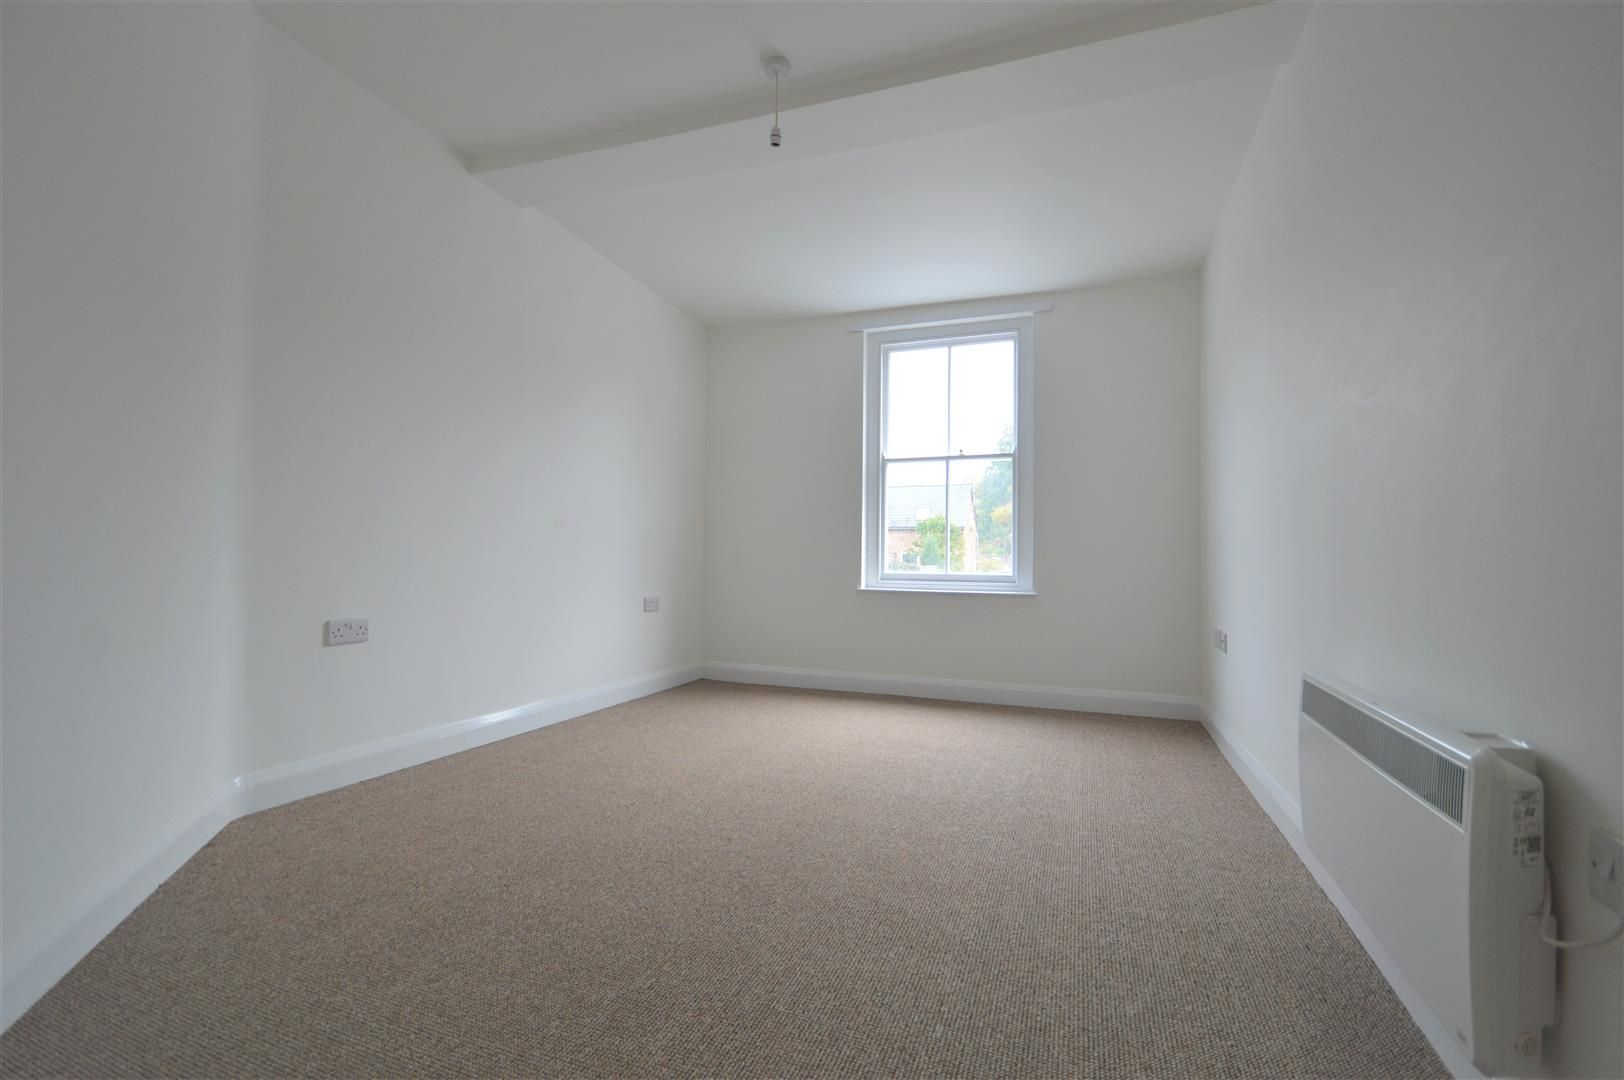 2 bed house to rent in Leominster, HR6